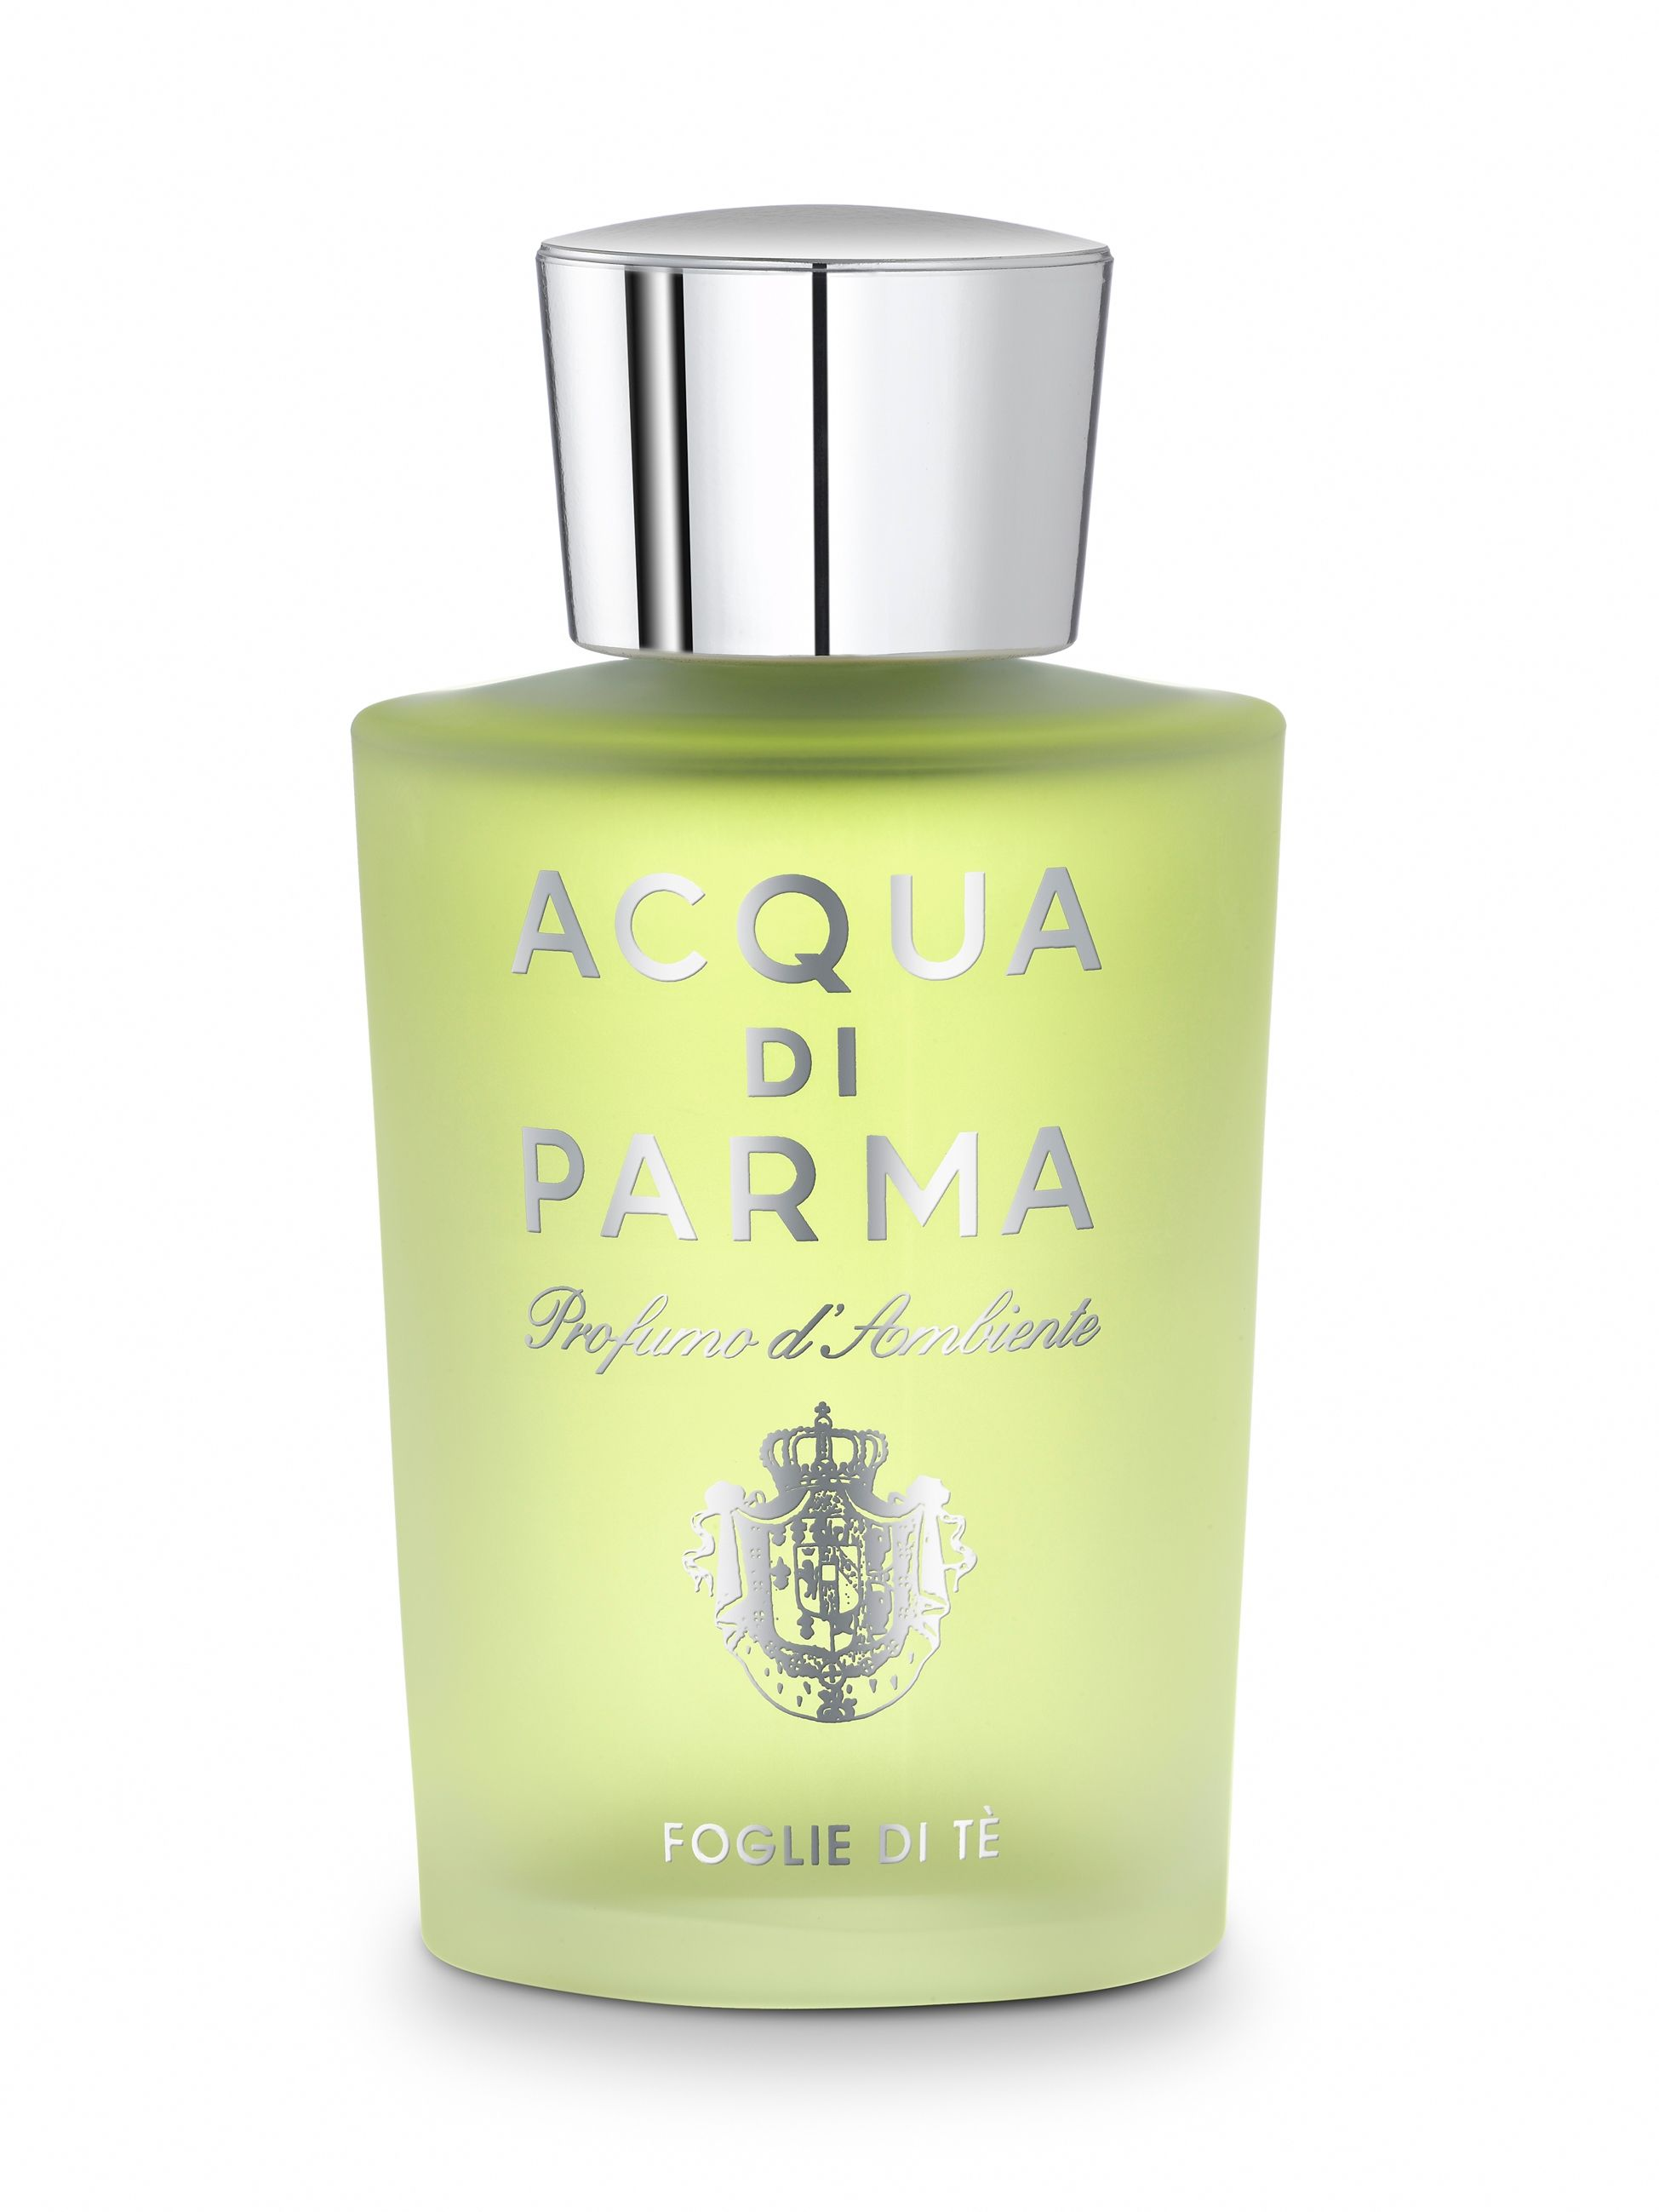 Image of Acqua Di Parma Colonia woody Accord room spray